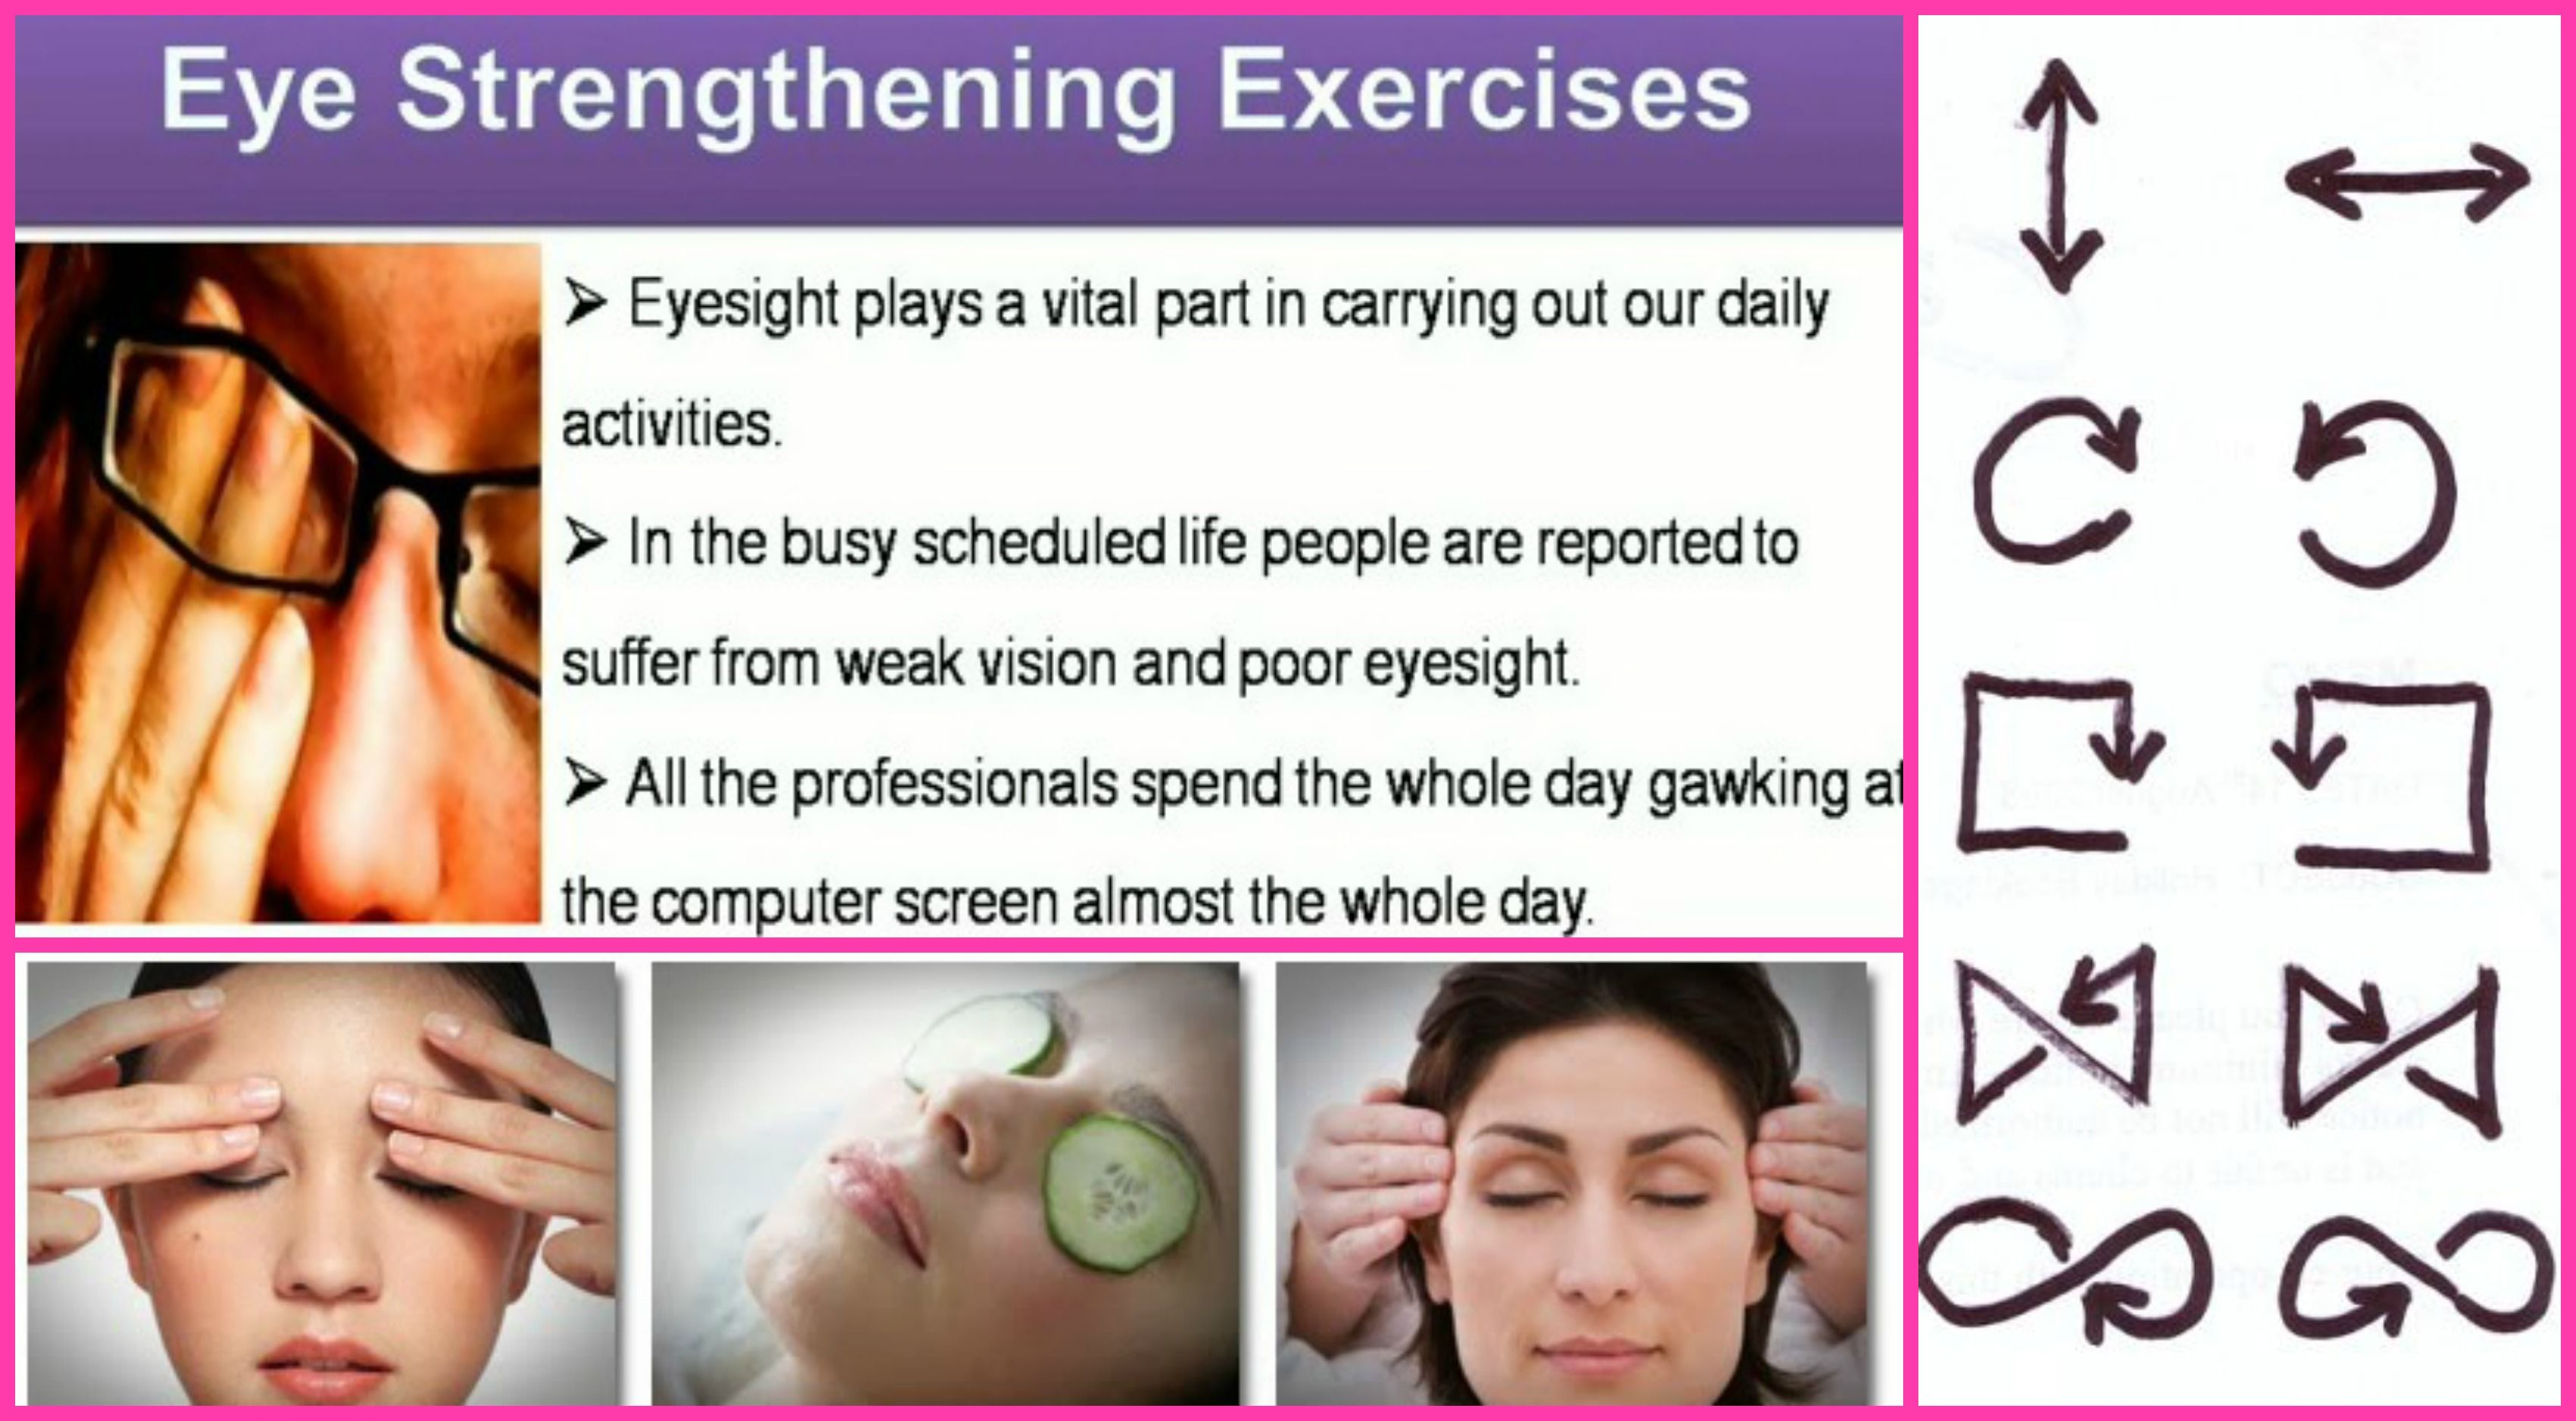 Improve Eyesight =Eye Exercises: 1. Blink your eyes as fast as you can for some time. 2 .Close the eyes tightly for some time and then open. Do this for 5 times. 3. Roll your eyes in clockwise as well as anticlockwise direction for 5 times. 4. While walking on the road or when you are in an open space, look as far as possible. 5. Look at an advertisement or some written material from a far place and try to read it by focusing your eyes. http://www.morningmist.co.in/HomePage.aspx